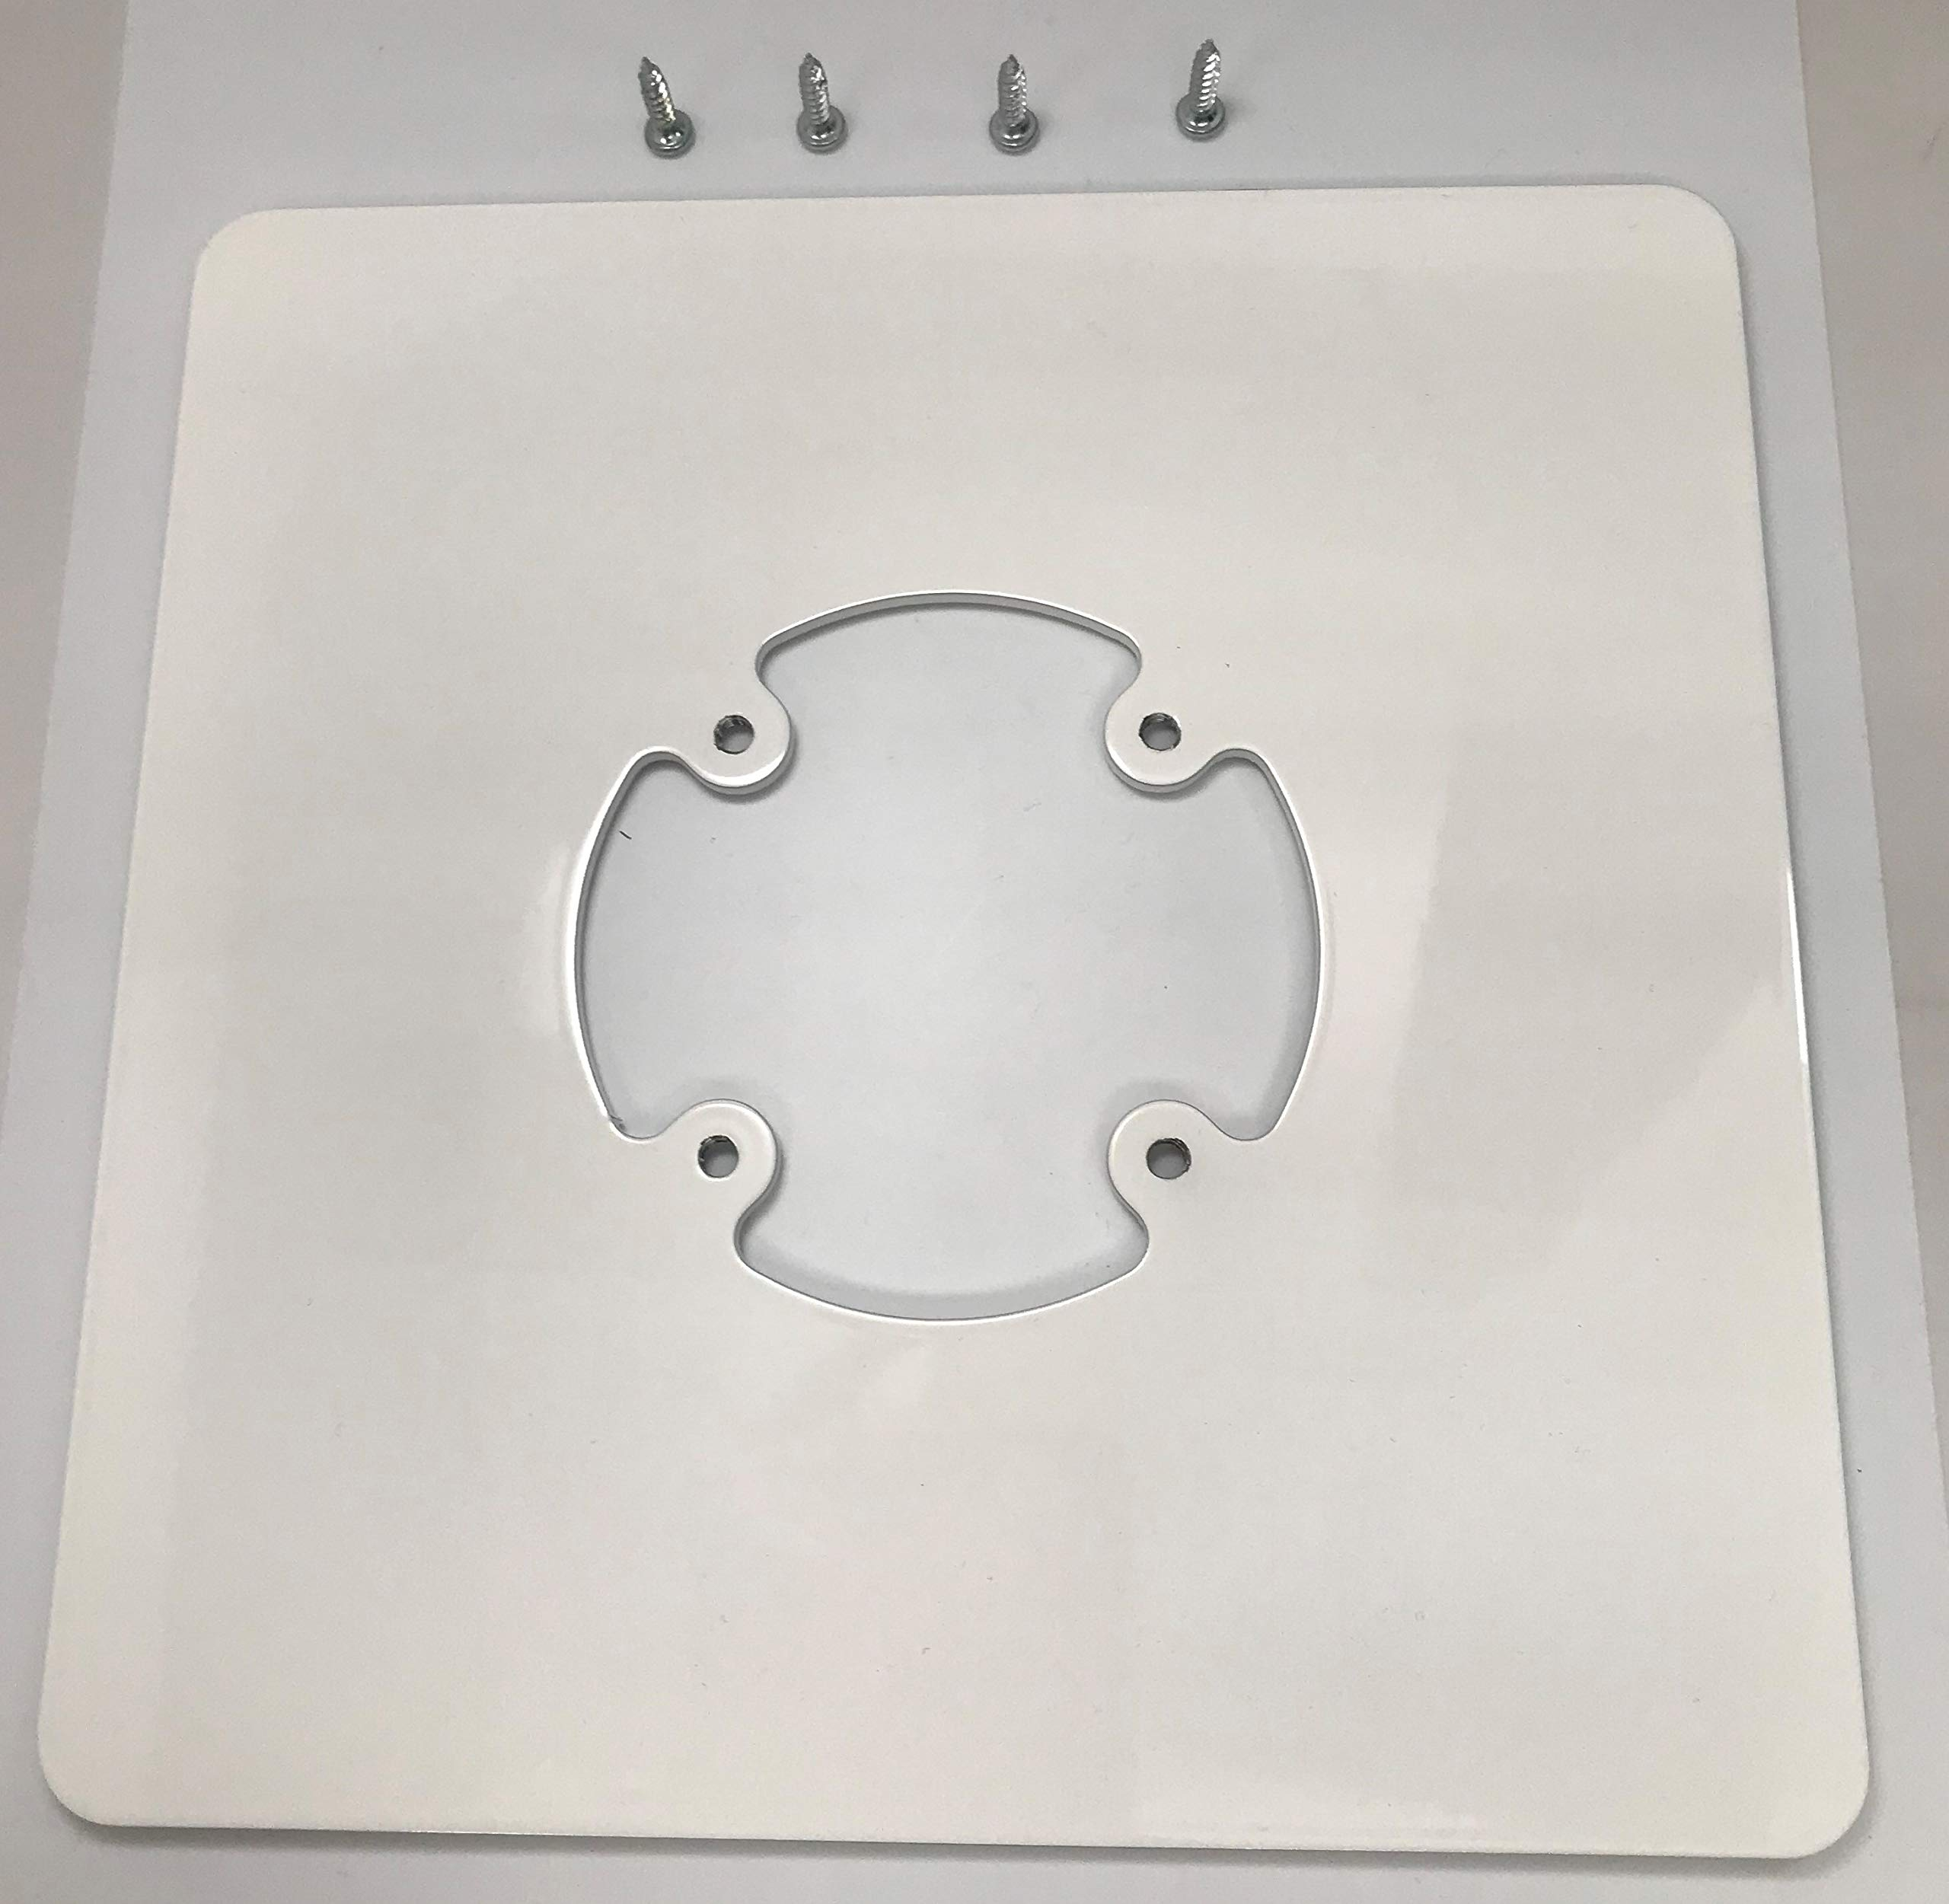 Freestanding Base Plate - White, Converts Swivel Stand to Stand Alone